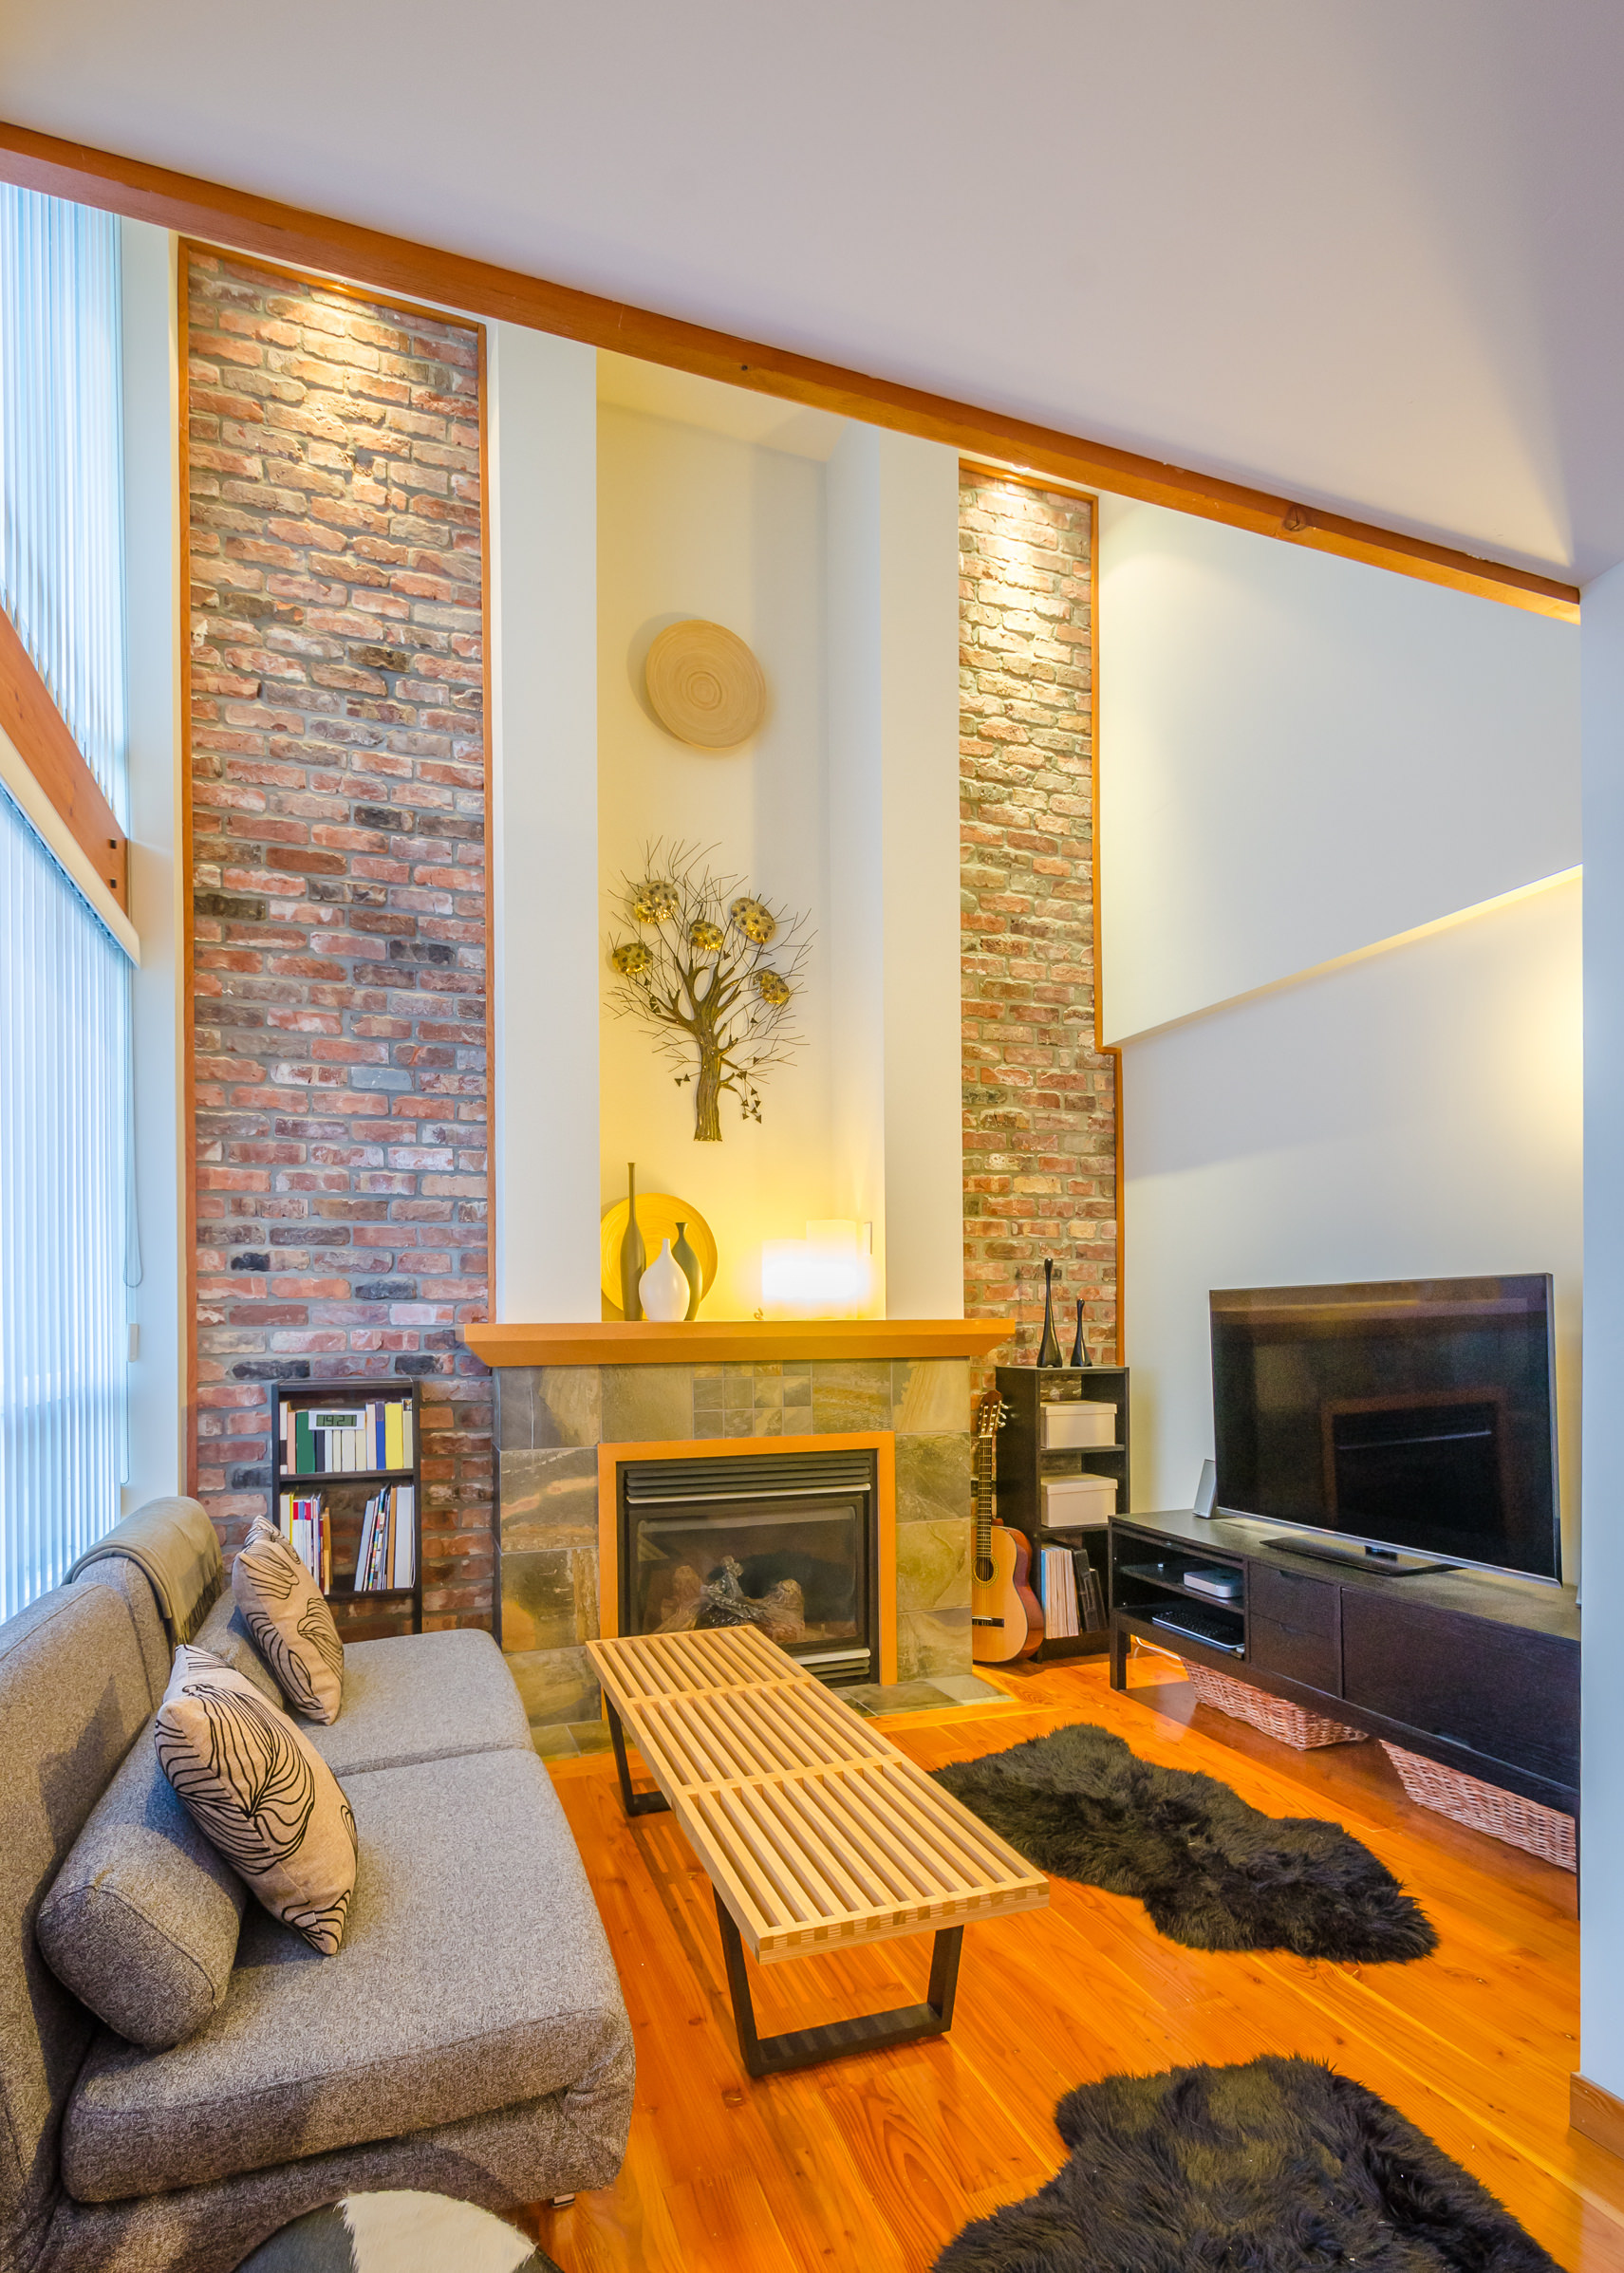 A small living space featuring a fireplace, a comfy sofa set and a large widescreen TV in front.